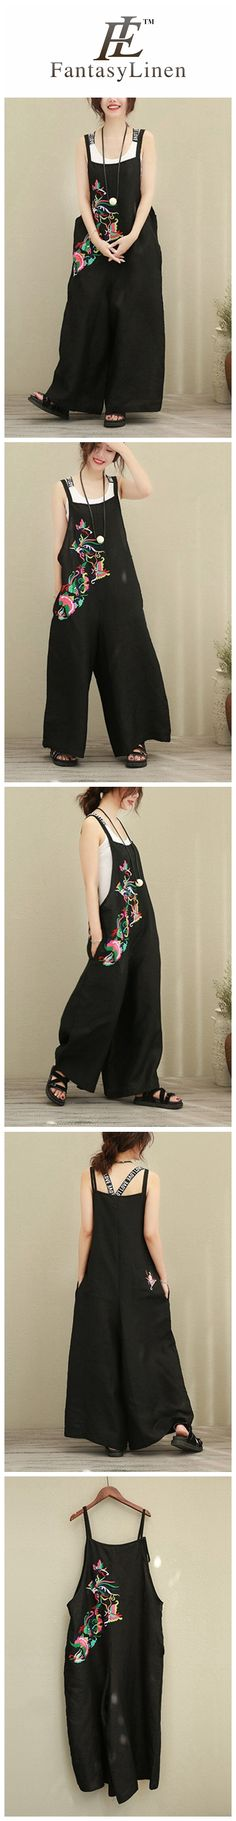 Black Loose Wide Leg Embroidery Pattern Cotton Linen Overalls Women Clothes  9110